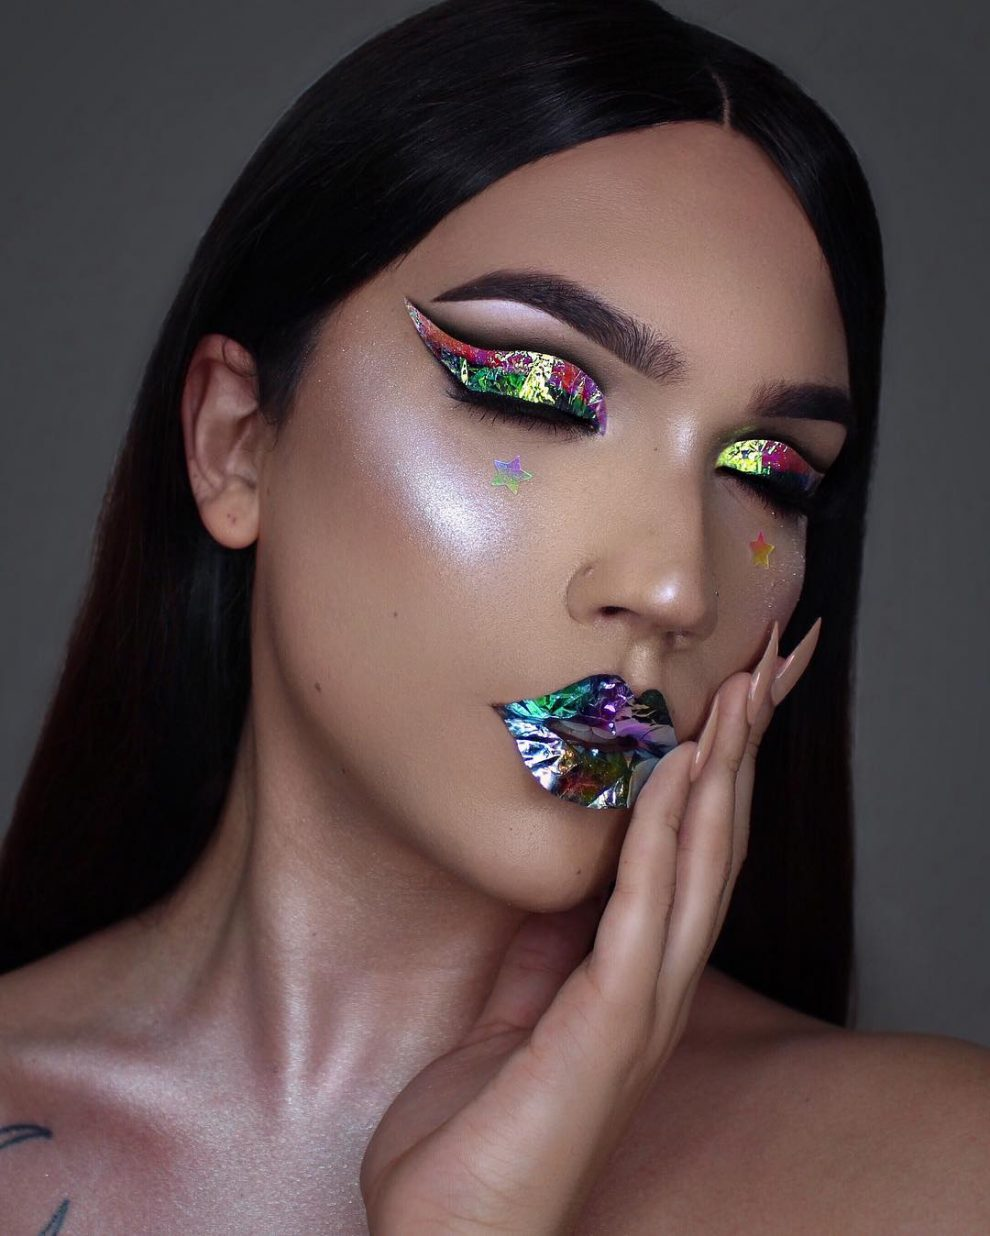 Makeup Artist Transforms Her Eyelids Into Two Gorgeous